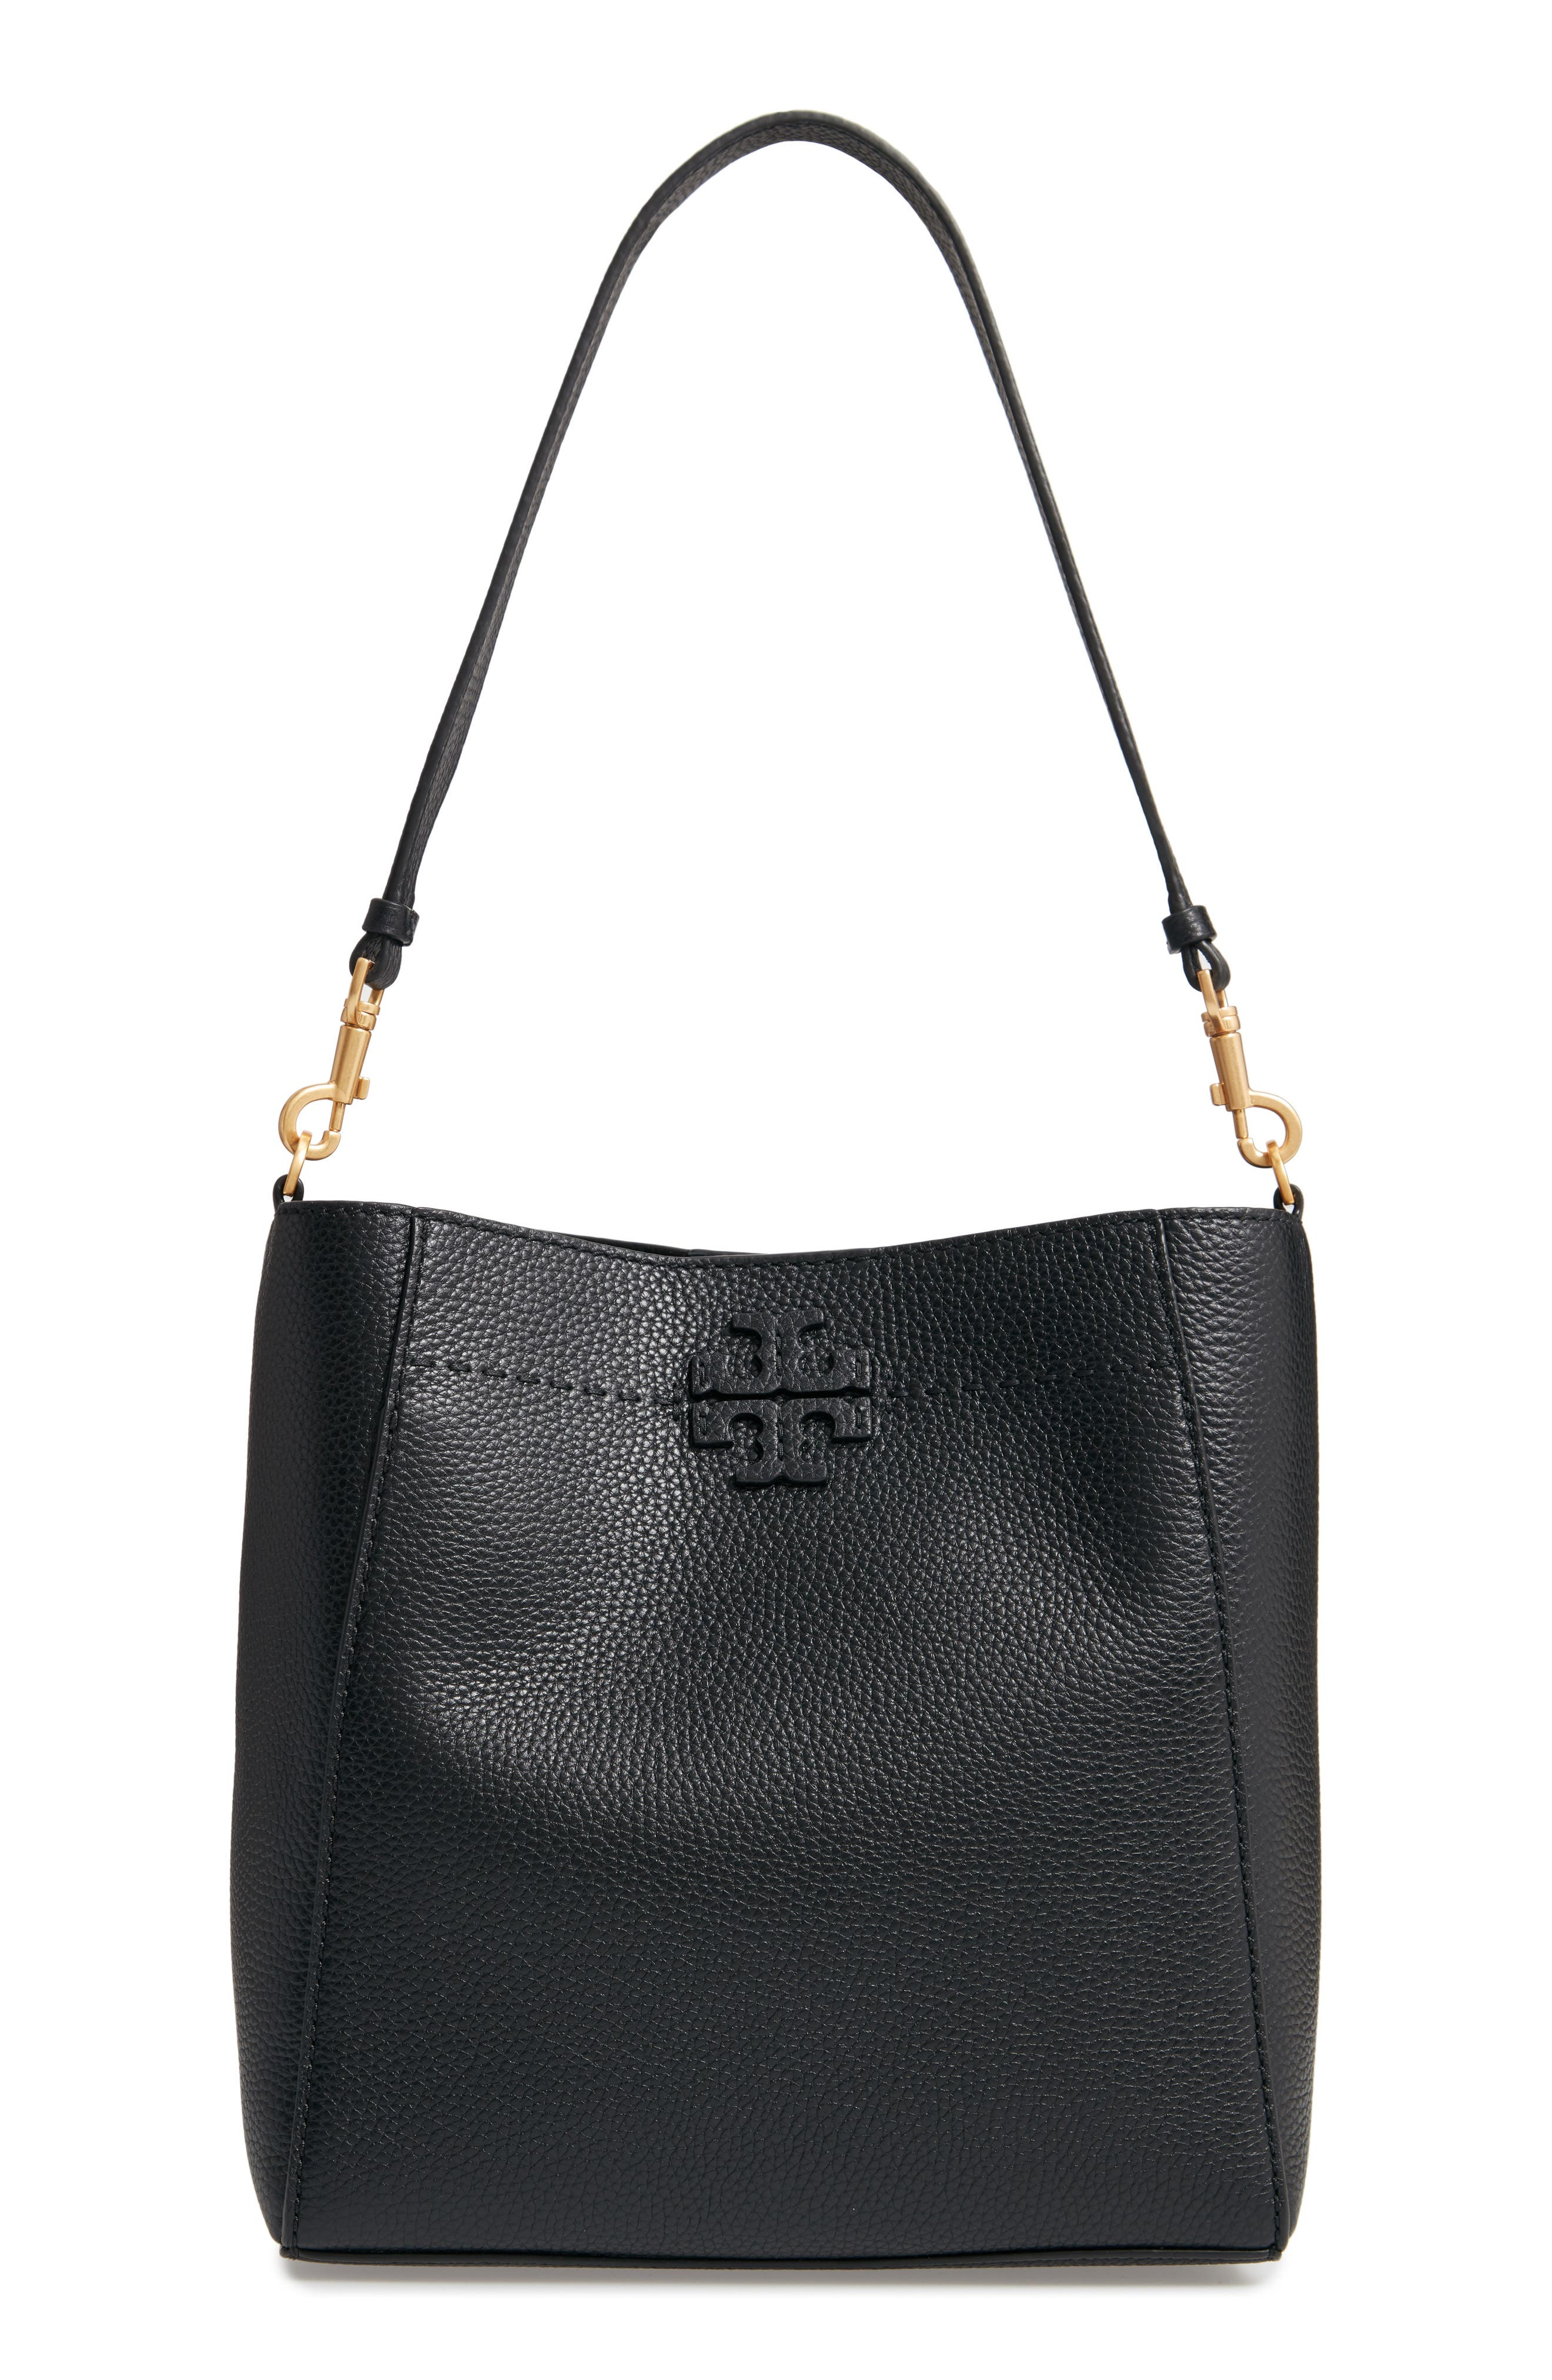 TORY BURCH, McGraw Leather Hobo, Main thumbnail 1, color, BLACK